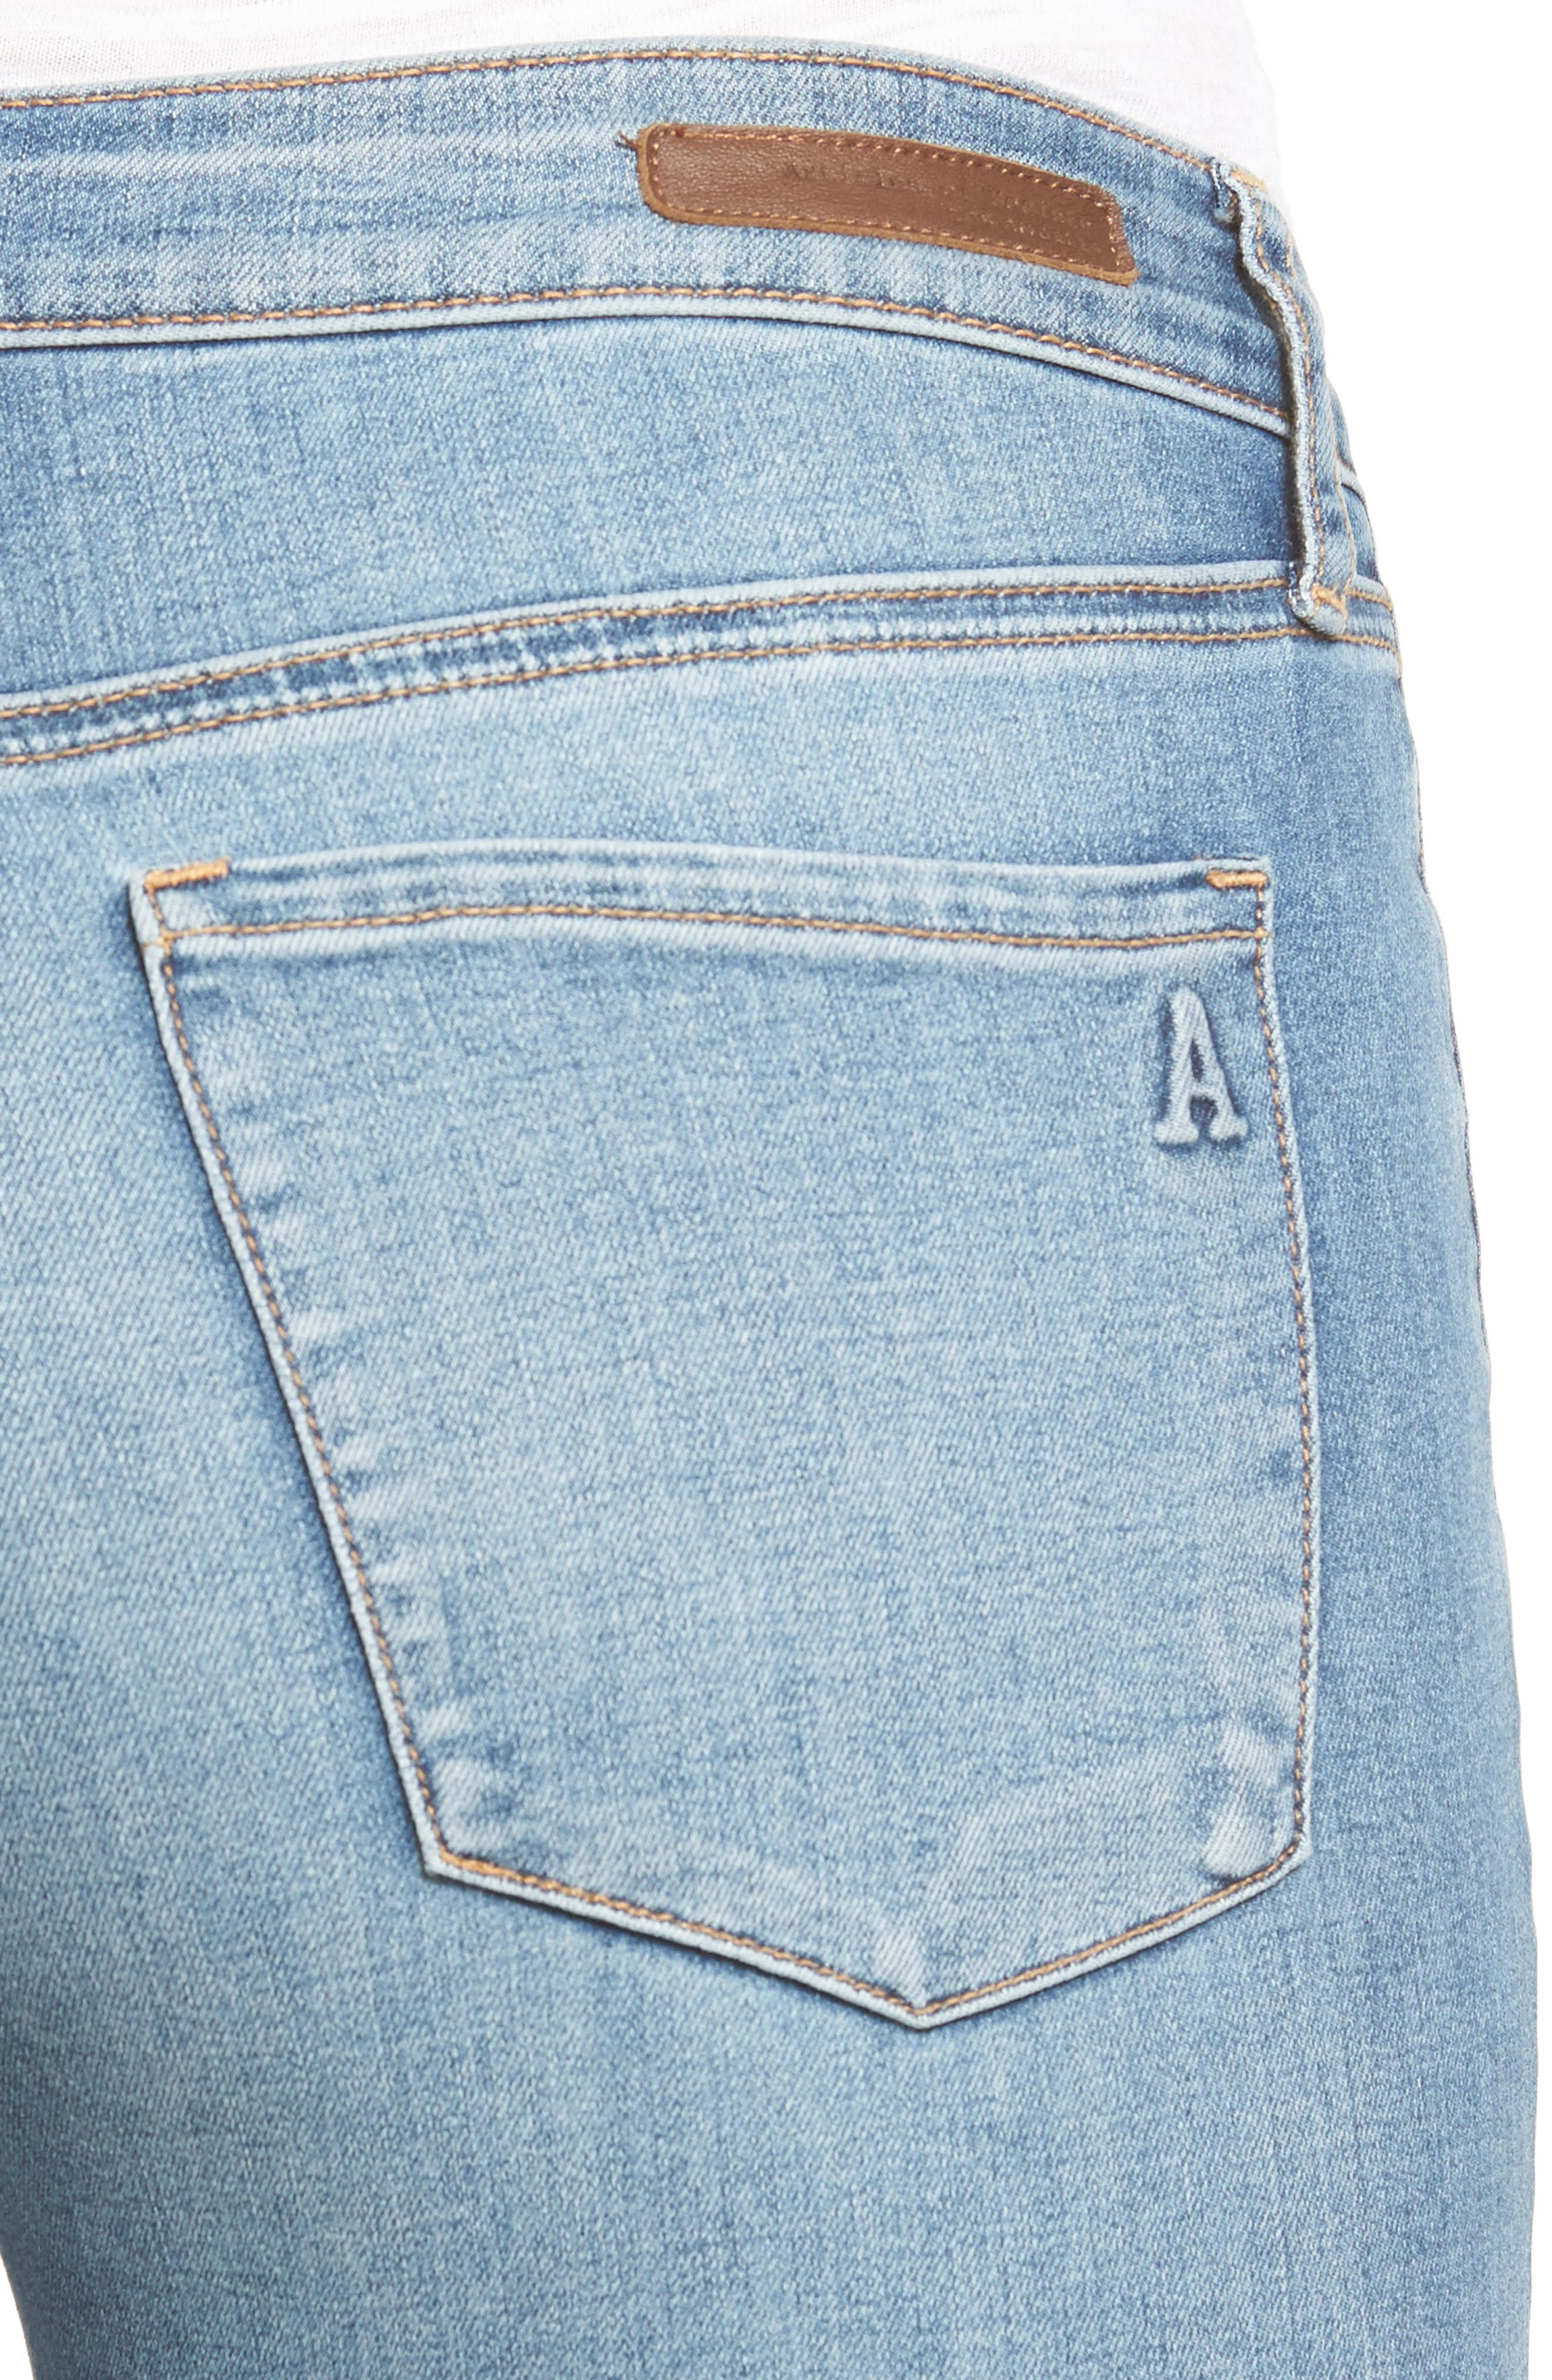 Carly Skinny Crop Jeans,                             Alternate thumbnail 4, color,                             400